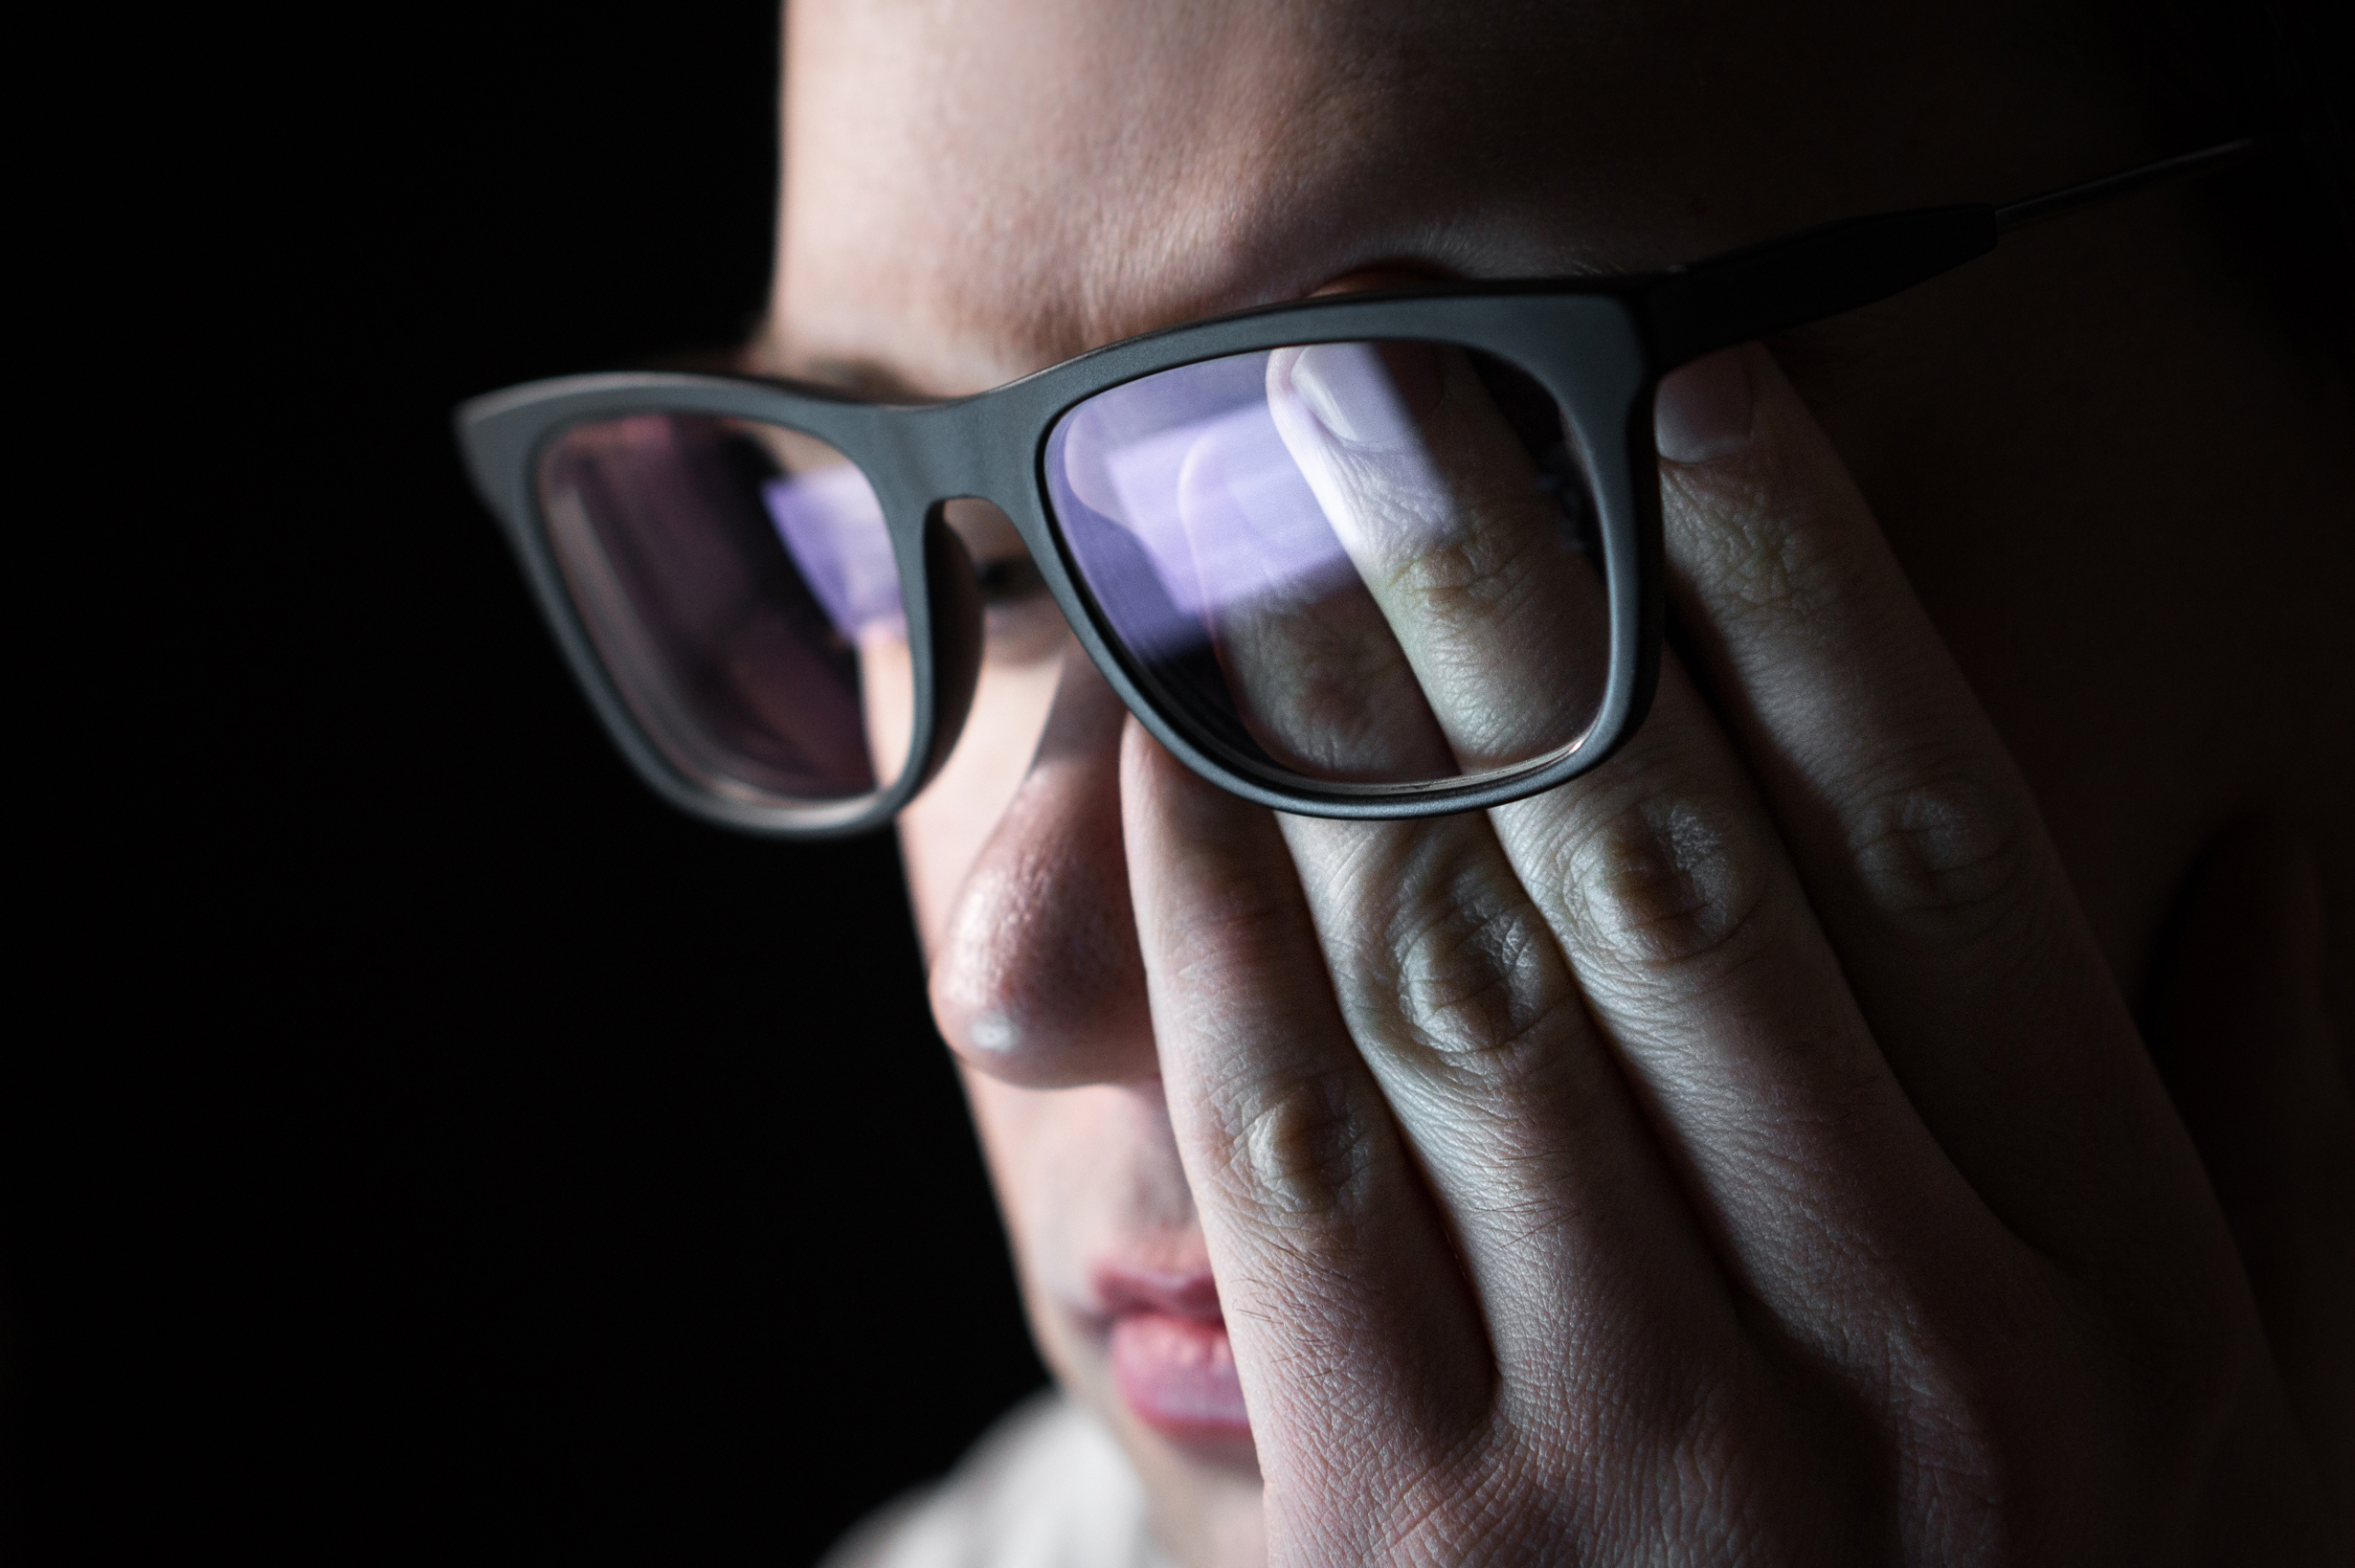 Man rubbing tired eyes. Problem with glasses, eyesight or vision. Person having stress or depression. Workplace bullying. Working late with computer. Astigmatism, myopia or insomnia. Dramatic mood.